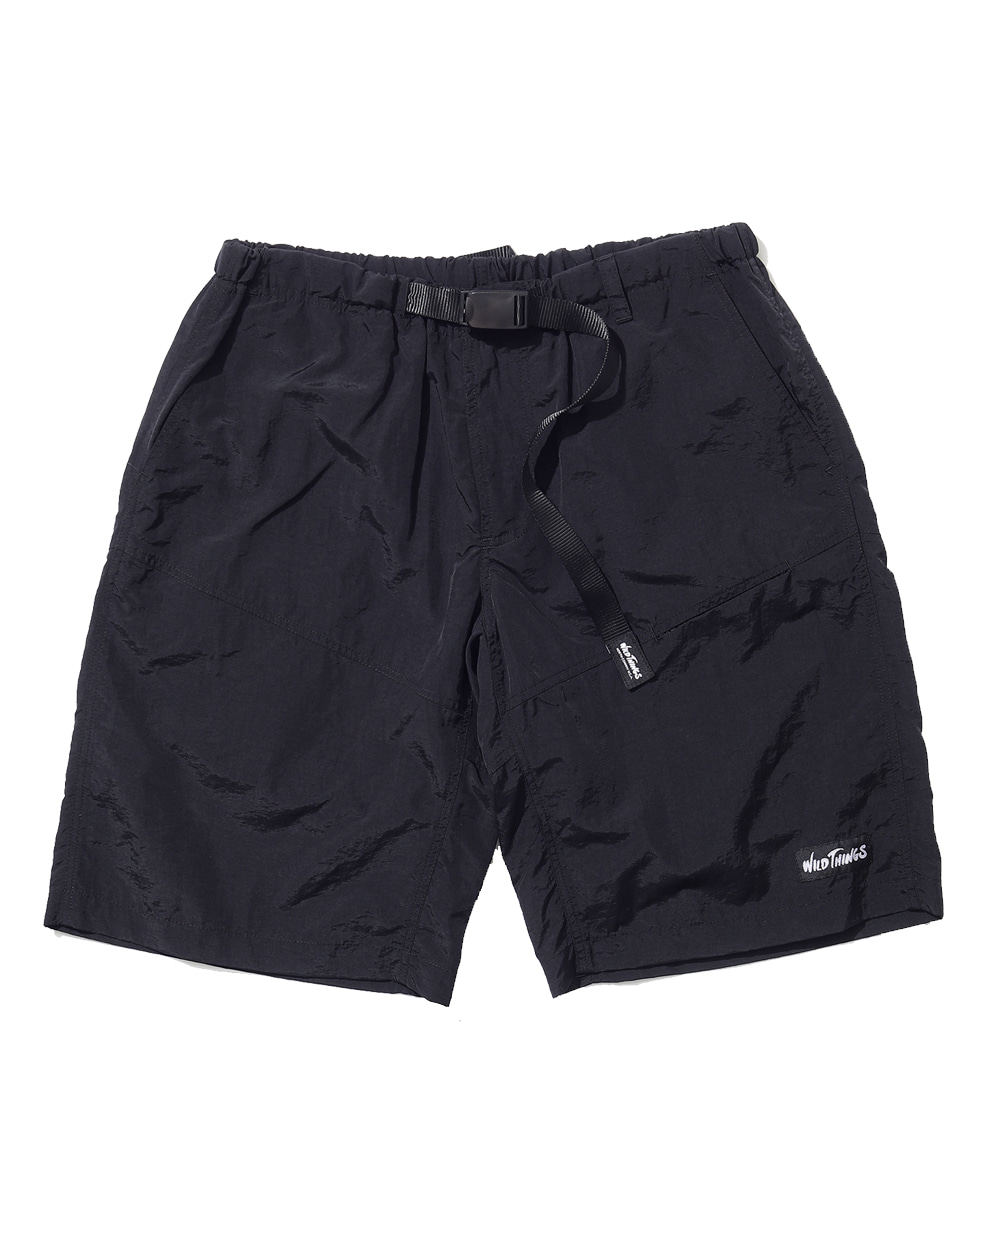 와일드띵스 CAMP SHORTS (Black)